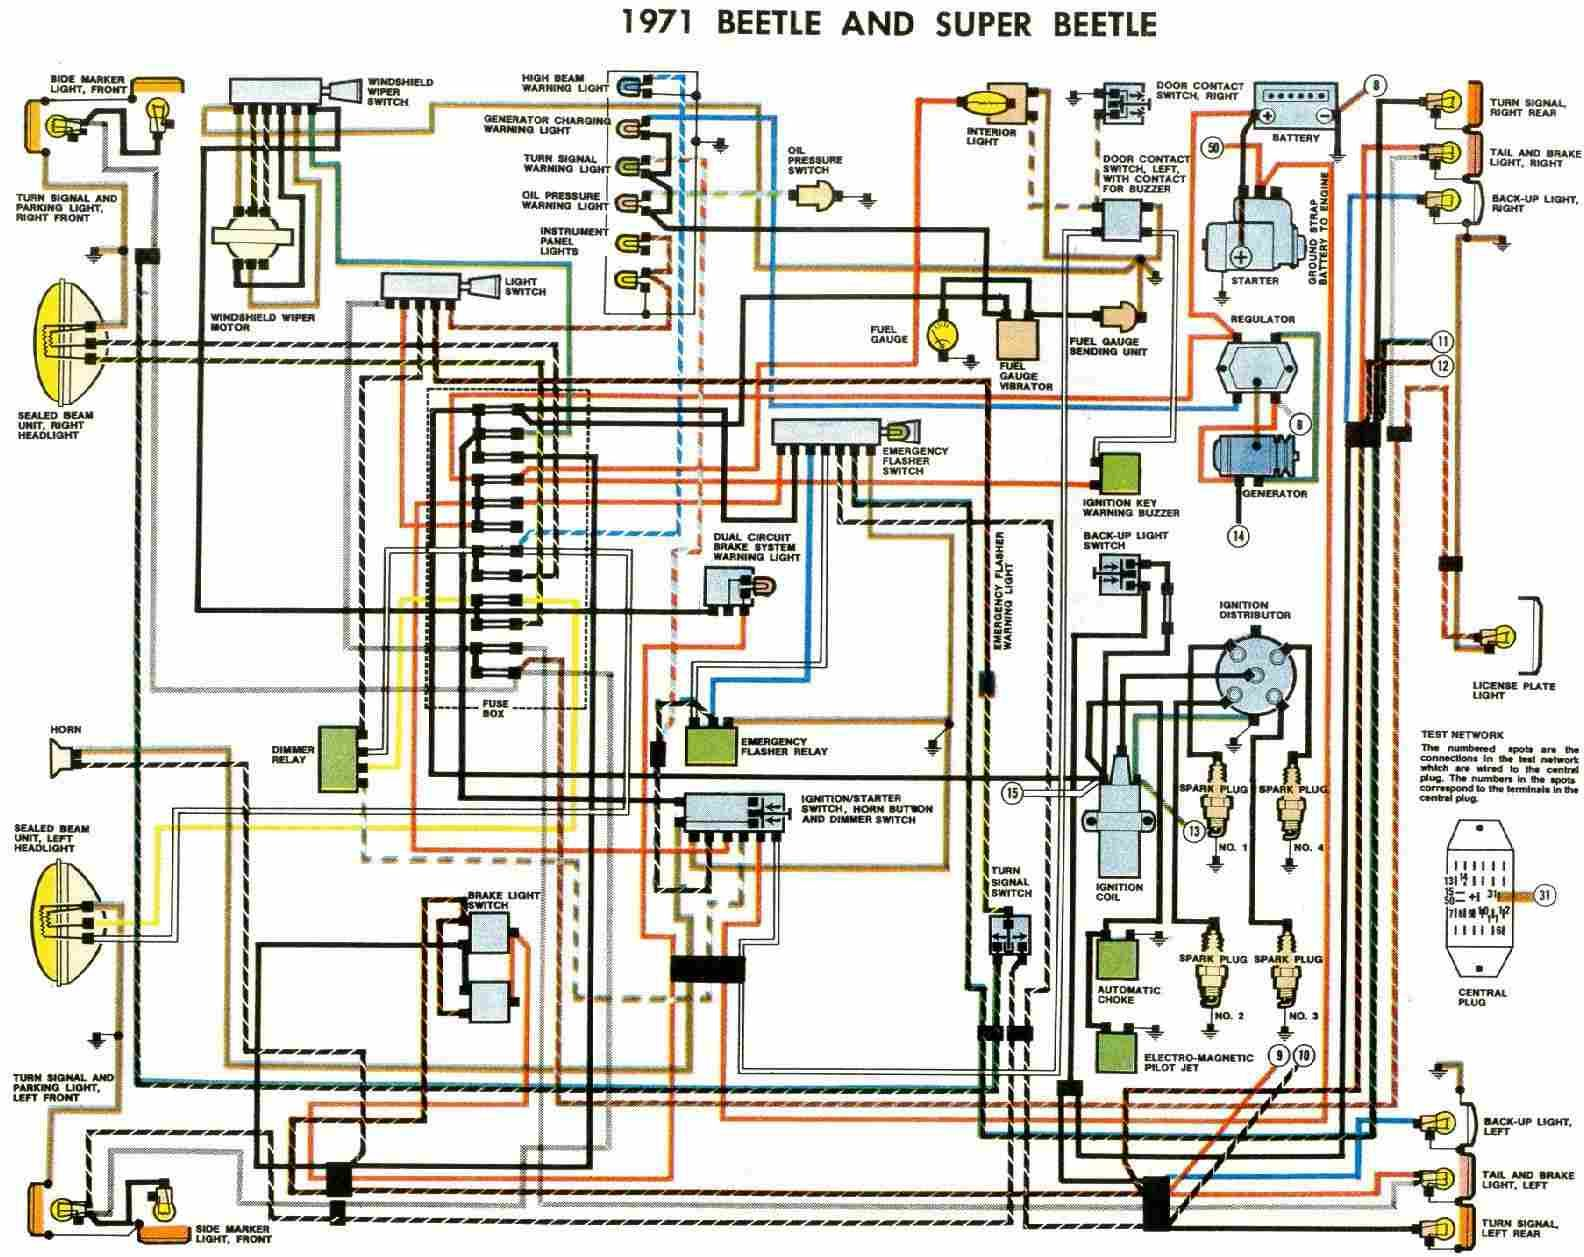 70a77cea80ed389fc28e4bd56fae267b vw beetle wiring such a simple car! bugs pinterest vw vw t4 wiring diagram pdf at gsmx.co